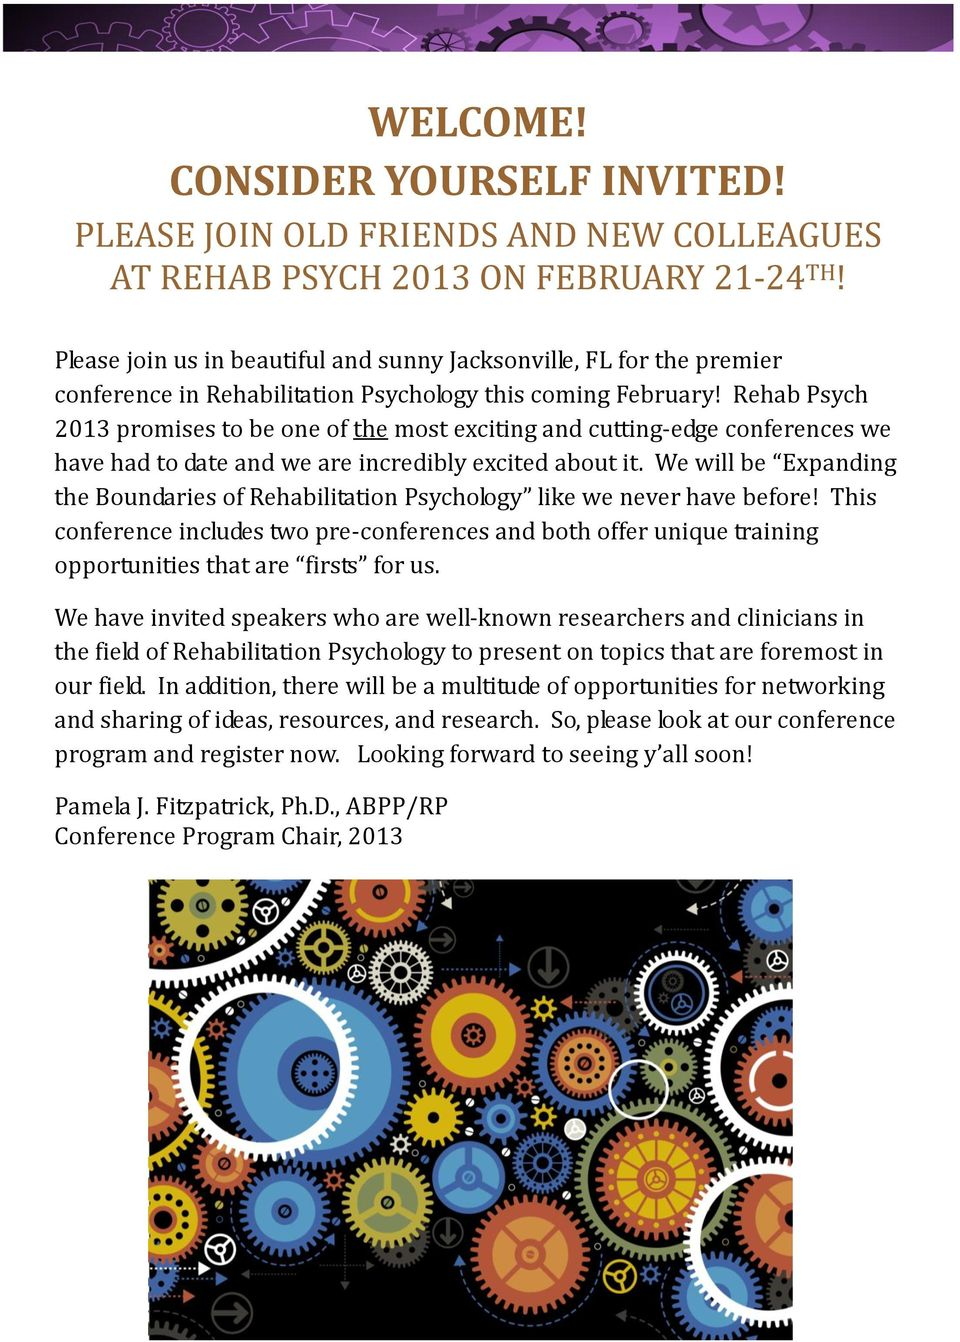 Rehab Psych 2013 promises to be one of the most exciting and cutting-edge conferences we have had to date and we are incredibly excited about it.